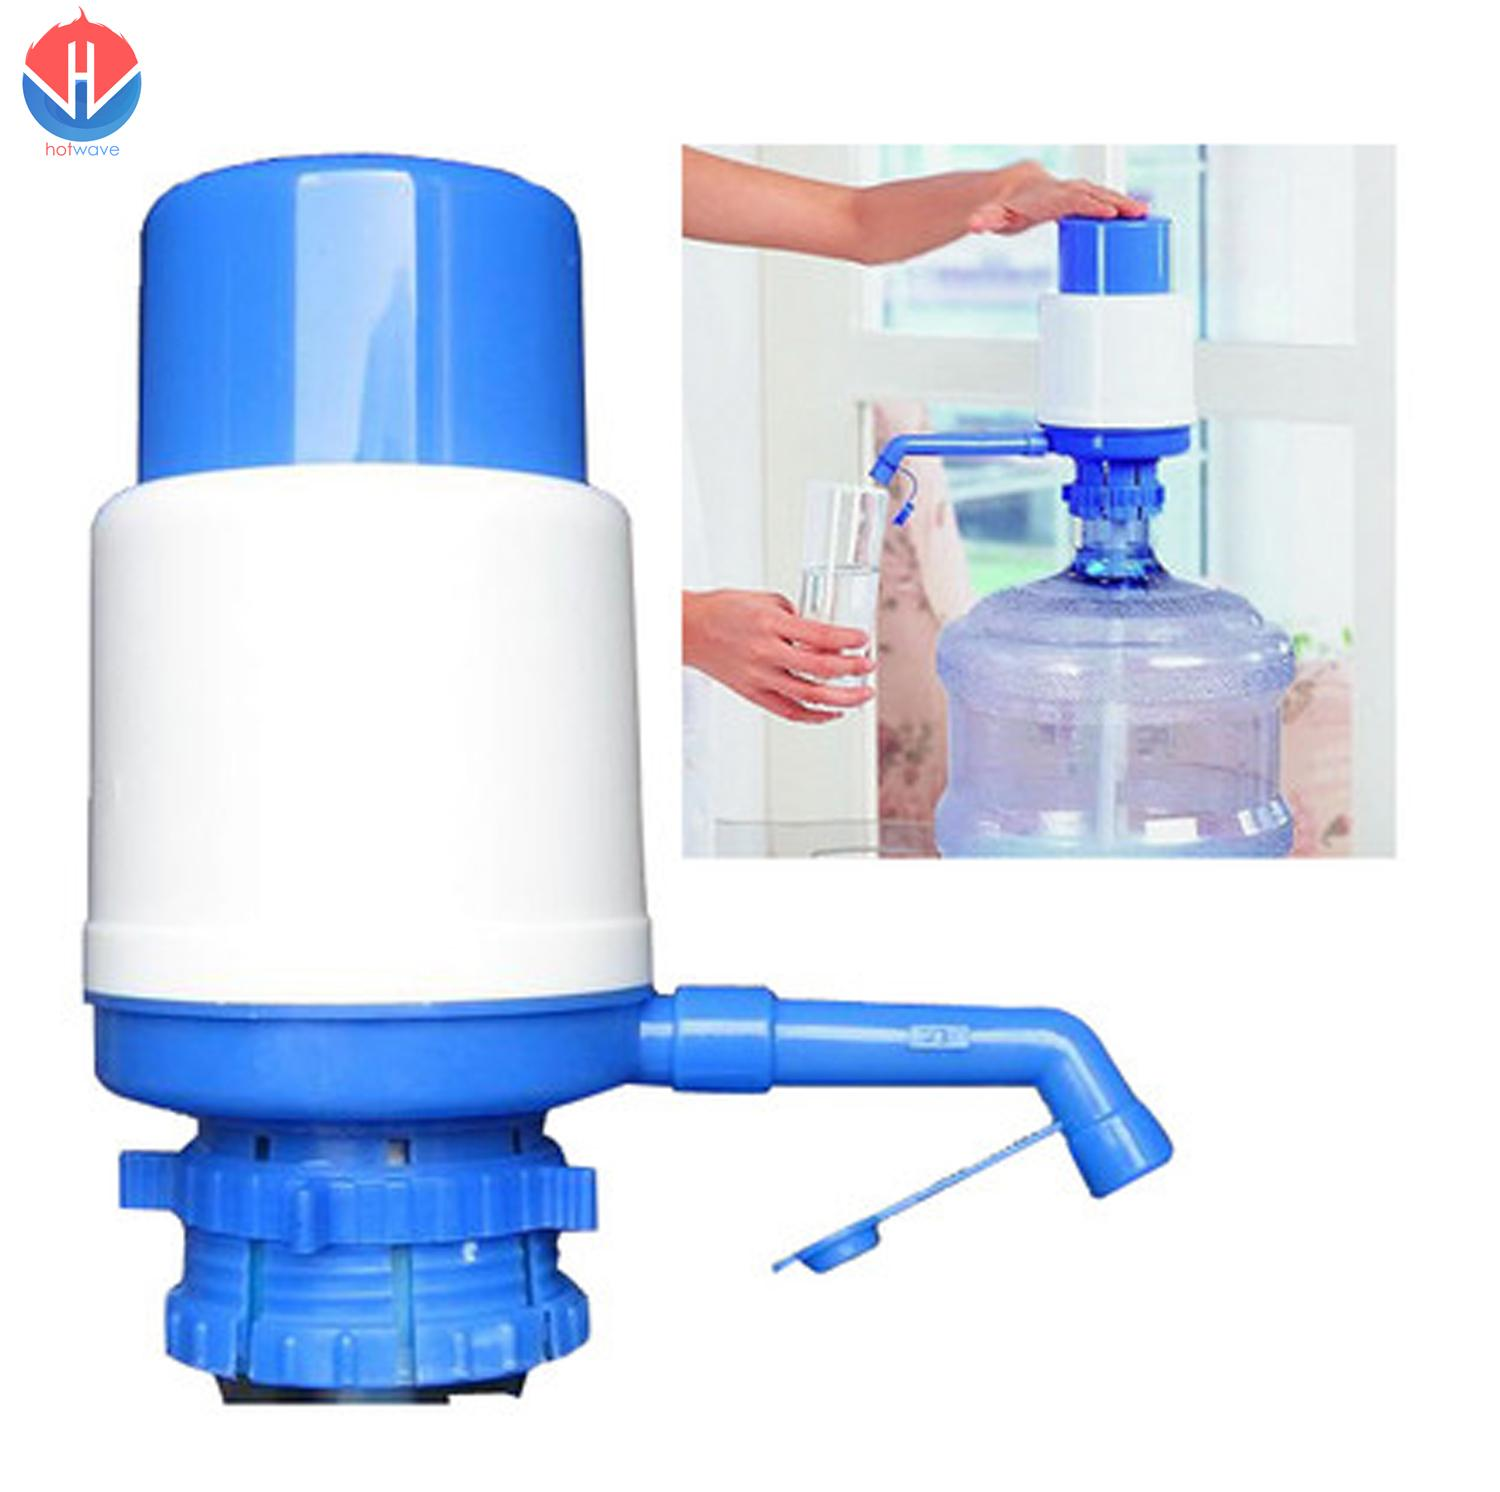 Water Dispenser For Sale Cooler Prices Brands Review In New Electric Adaptor Pompa Galon 5 Gallon Bottled Drinking Hand Press Manual Pump